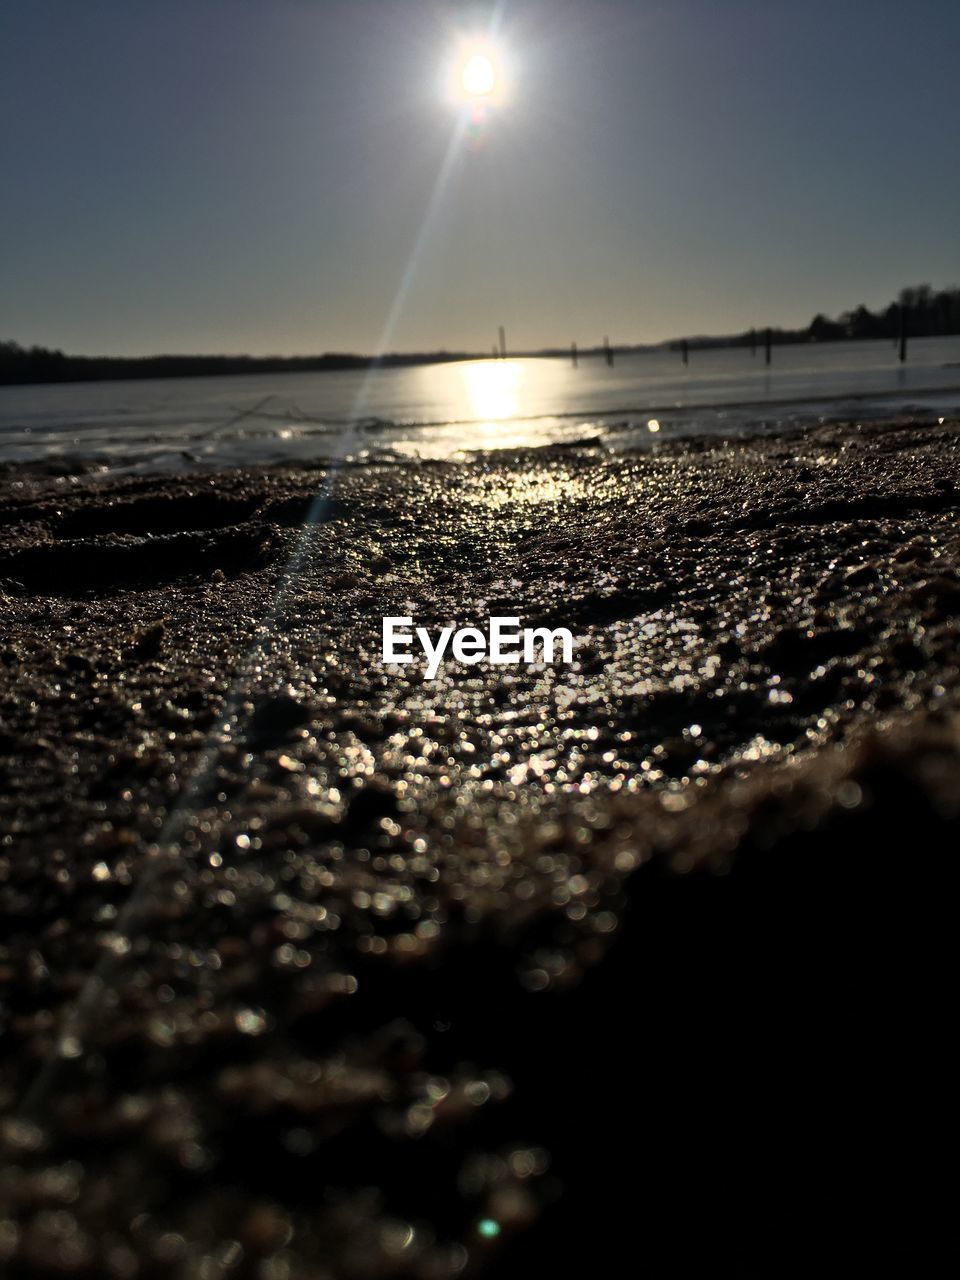 water, nature, beauty in nature, beach, sun, scenics, tranquility, sea, lens flare, sunlight, sky, shore, tranquil scene, outdoors, sunset, reflection, sand, no people, horizon over water, clear sky, day, close-up, pebble beach